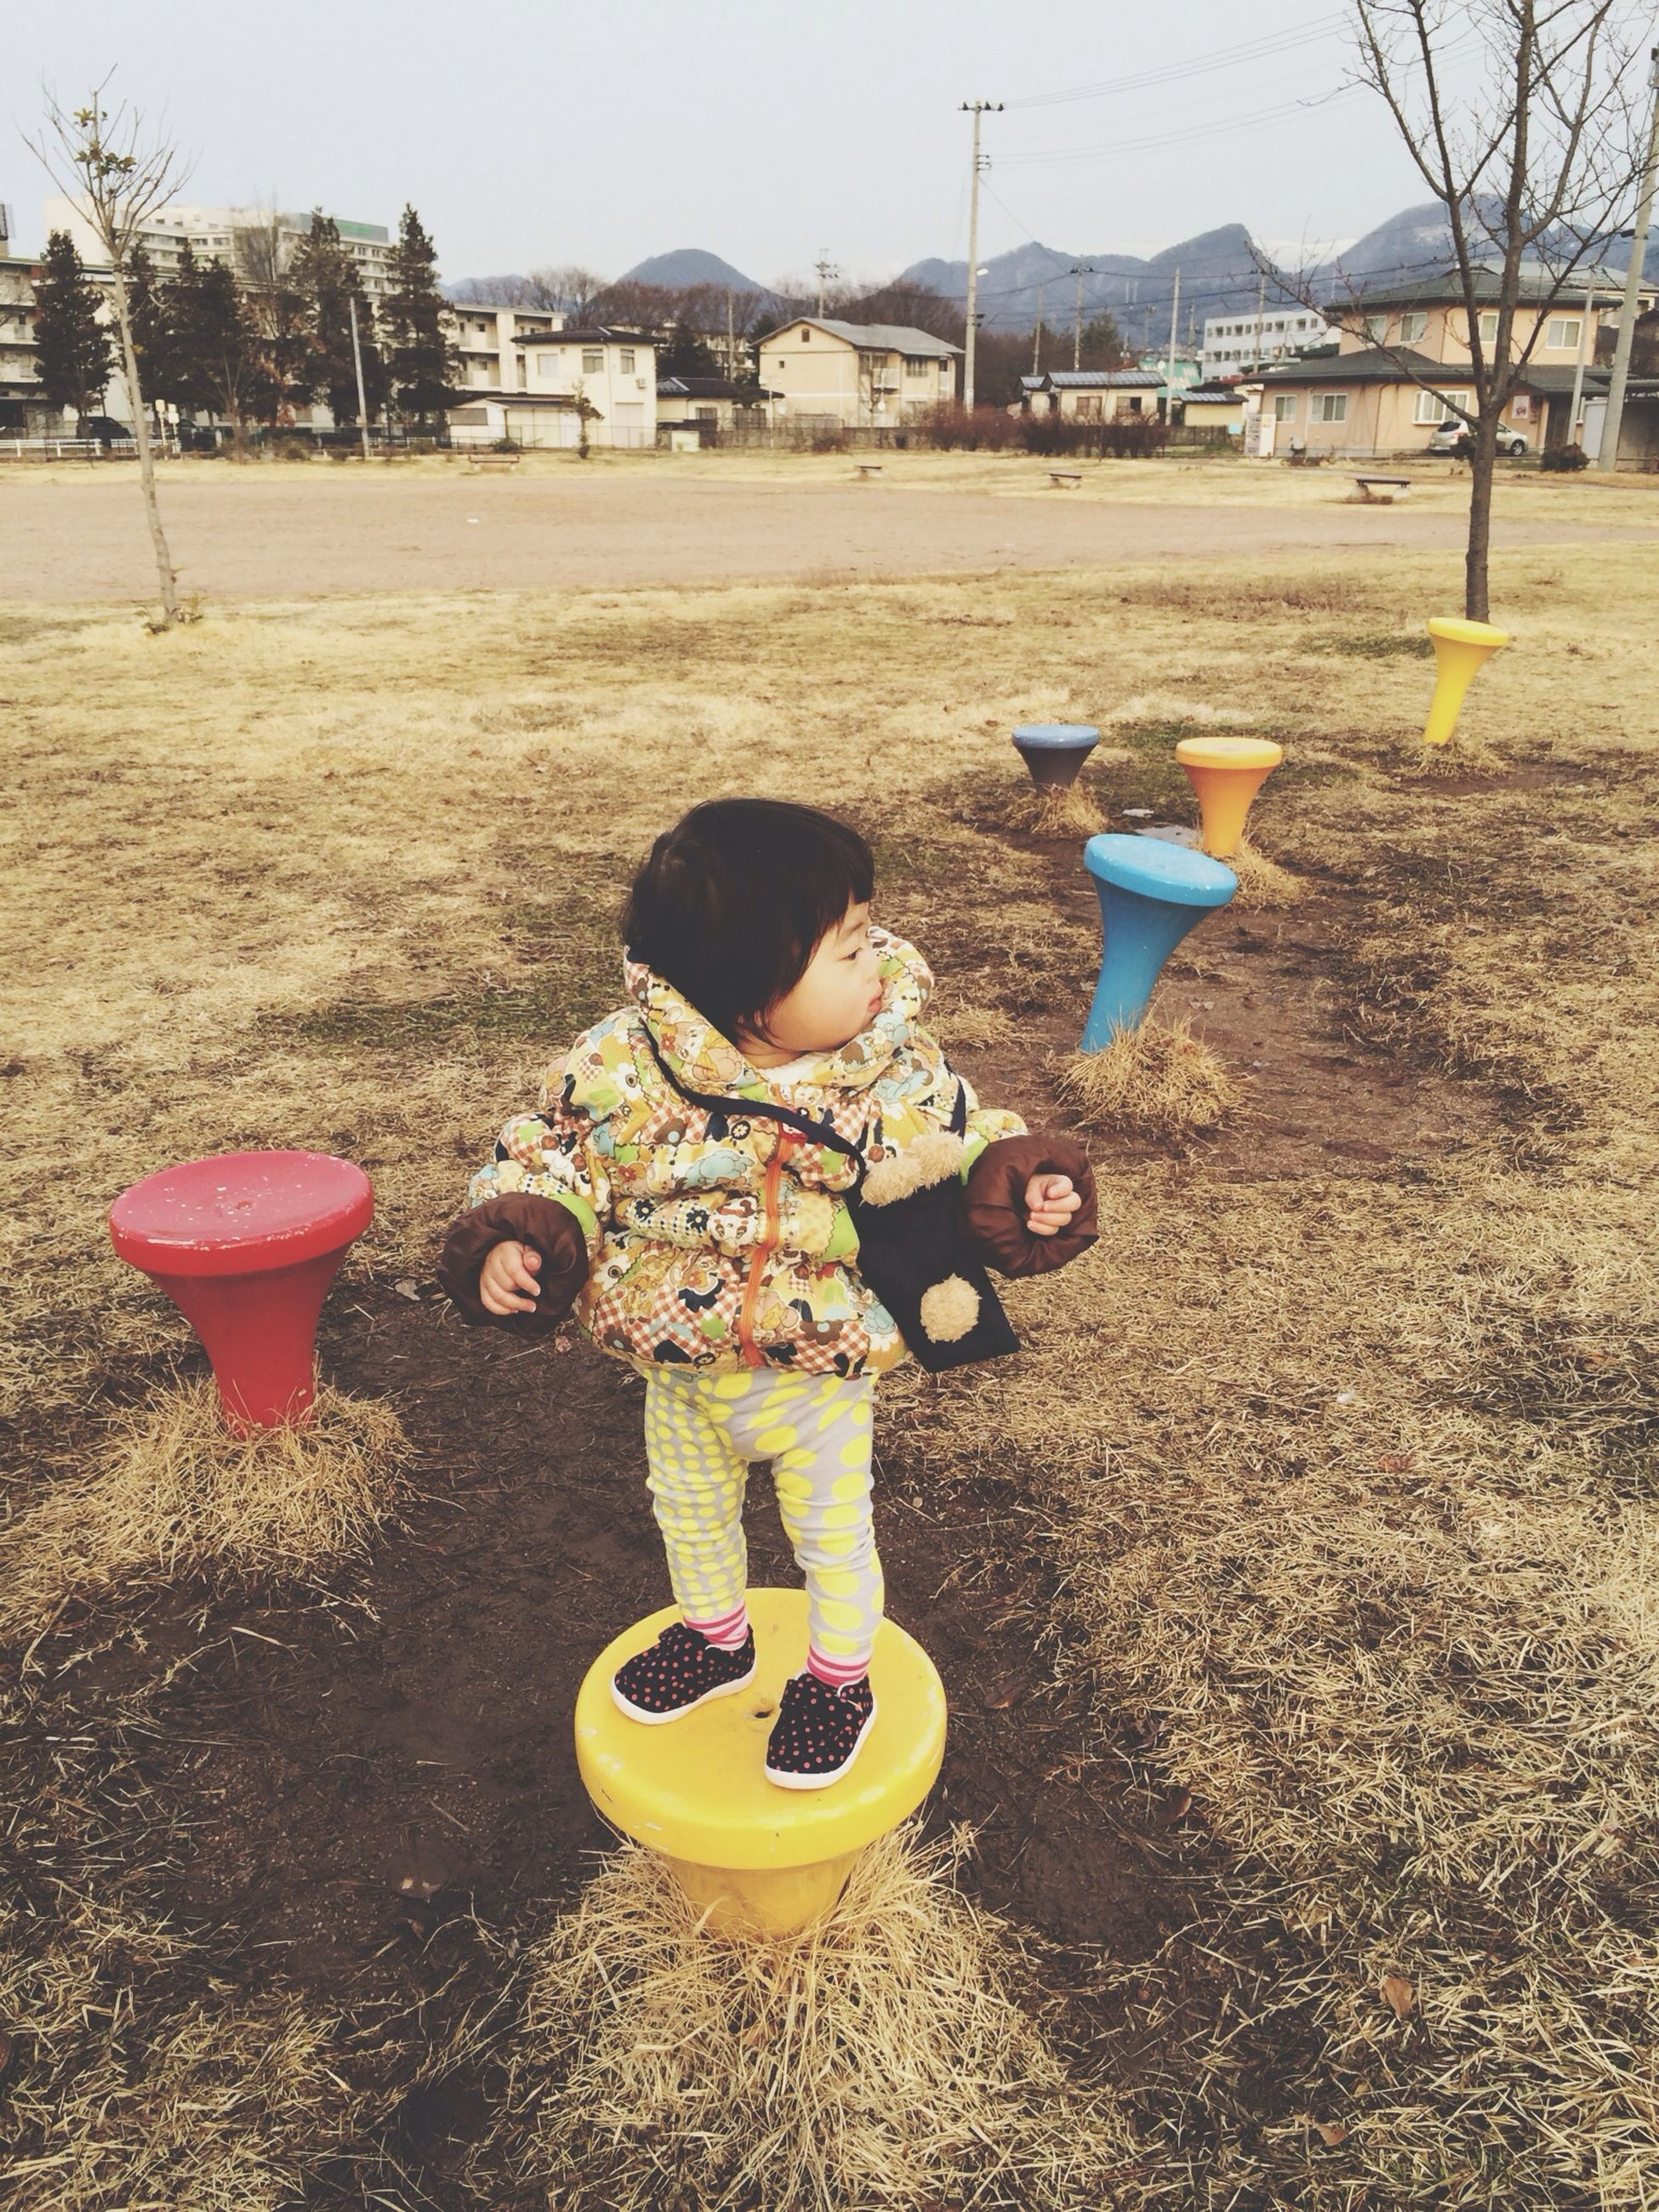 childhood, full length, playground, lifestyles, leisure activity, building exterior, boys, built structure, girls, elementary age, architecture, day, street, swing, playing, park - man made space, casual clothing, outdoors